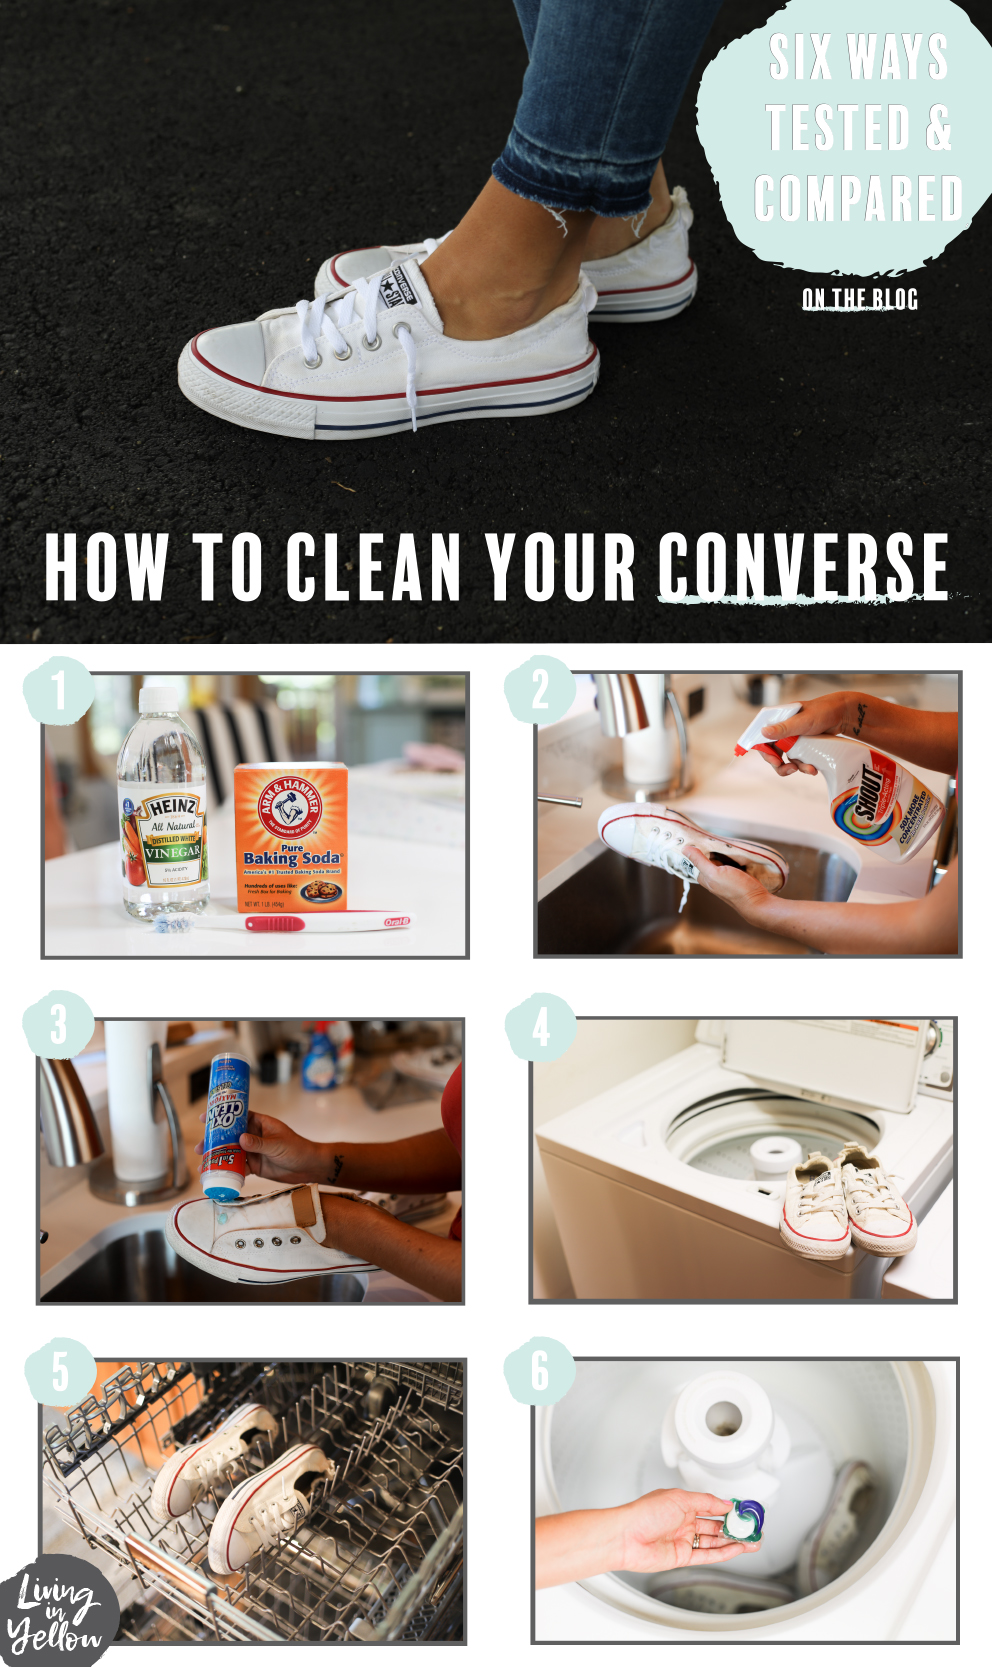 f58733841566 How to Clean Your Converse  6 Methods Put To The Test!  - Living in ...